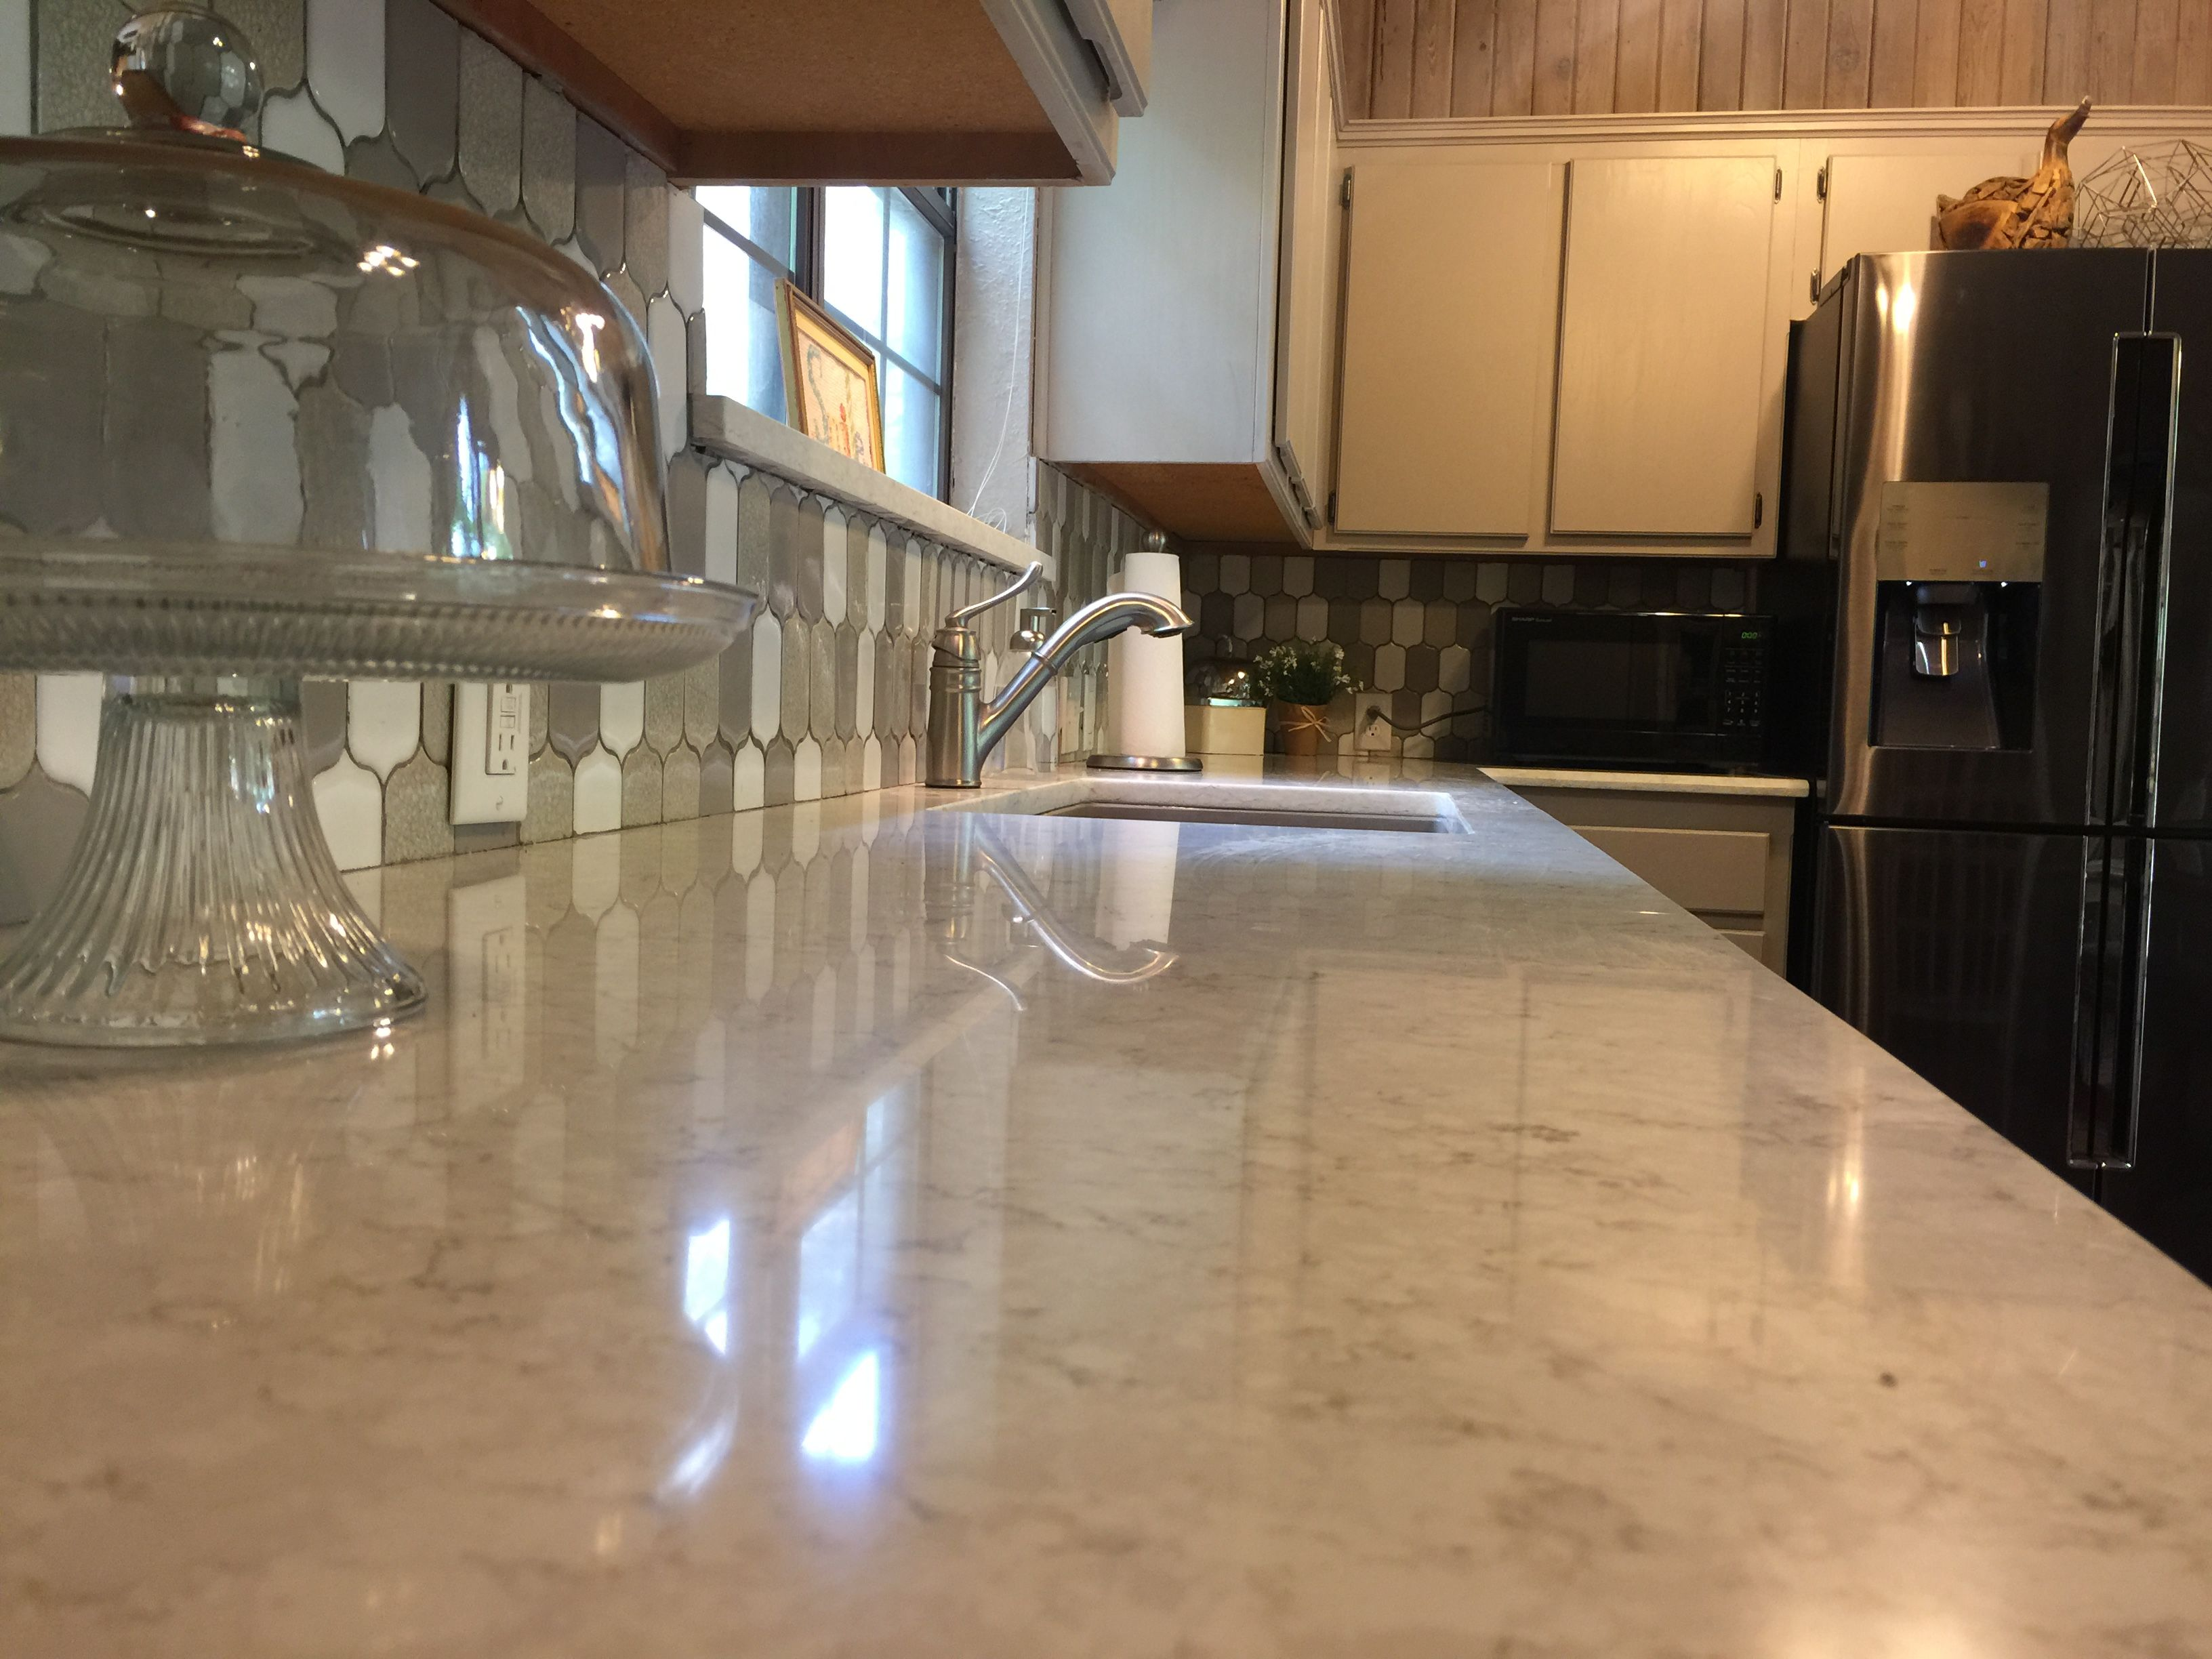 Lusso Quartz Countertops By Silestone With Large Single Sink. A Little  Cross Between Farmhouse And